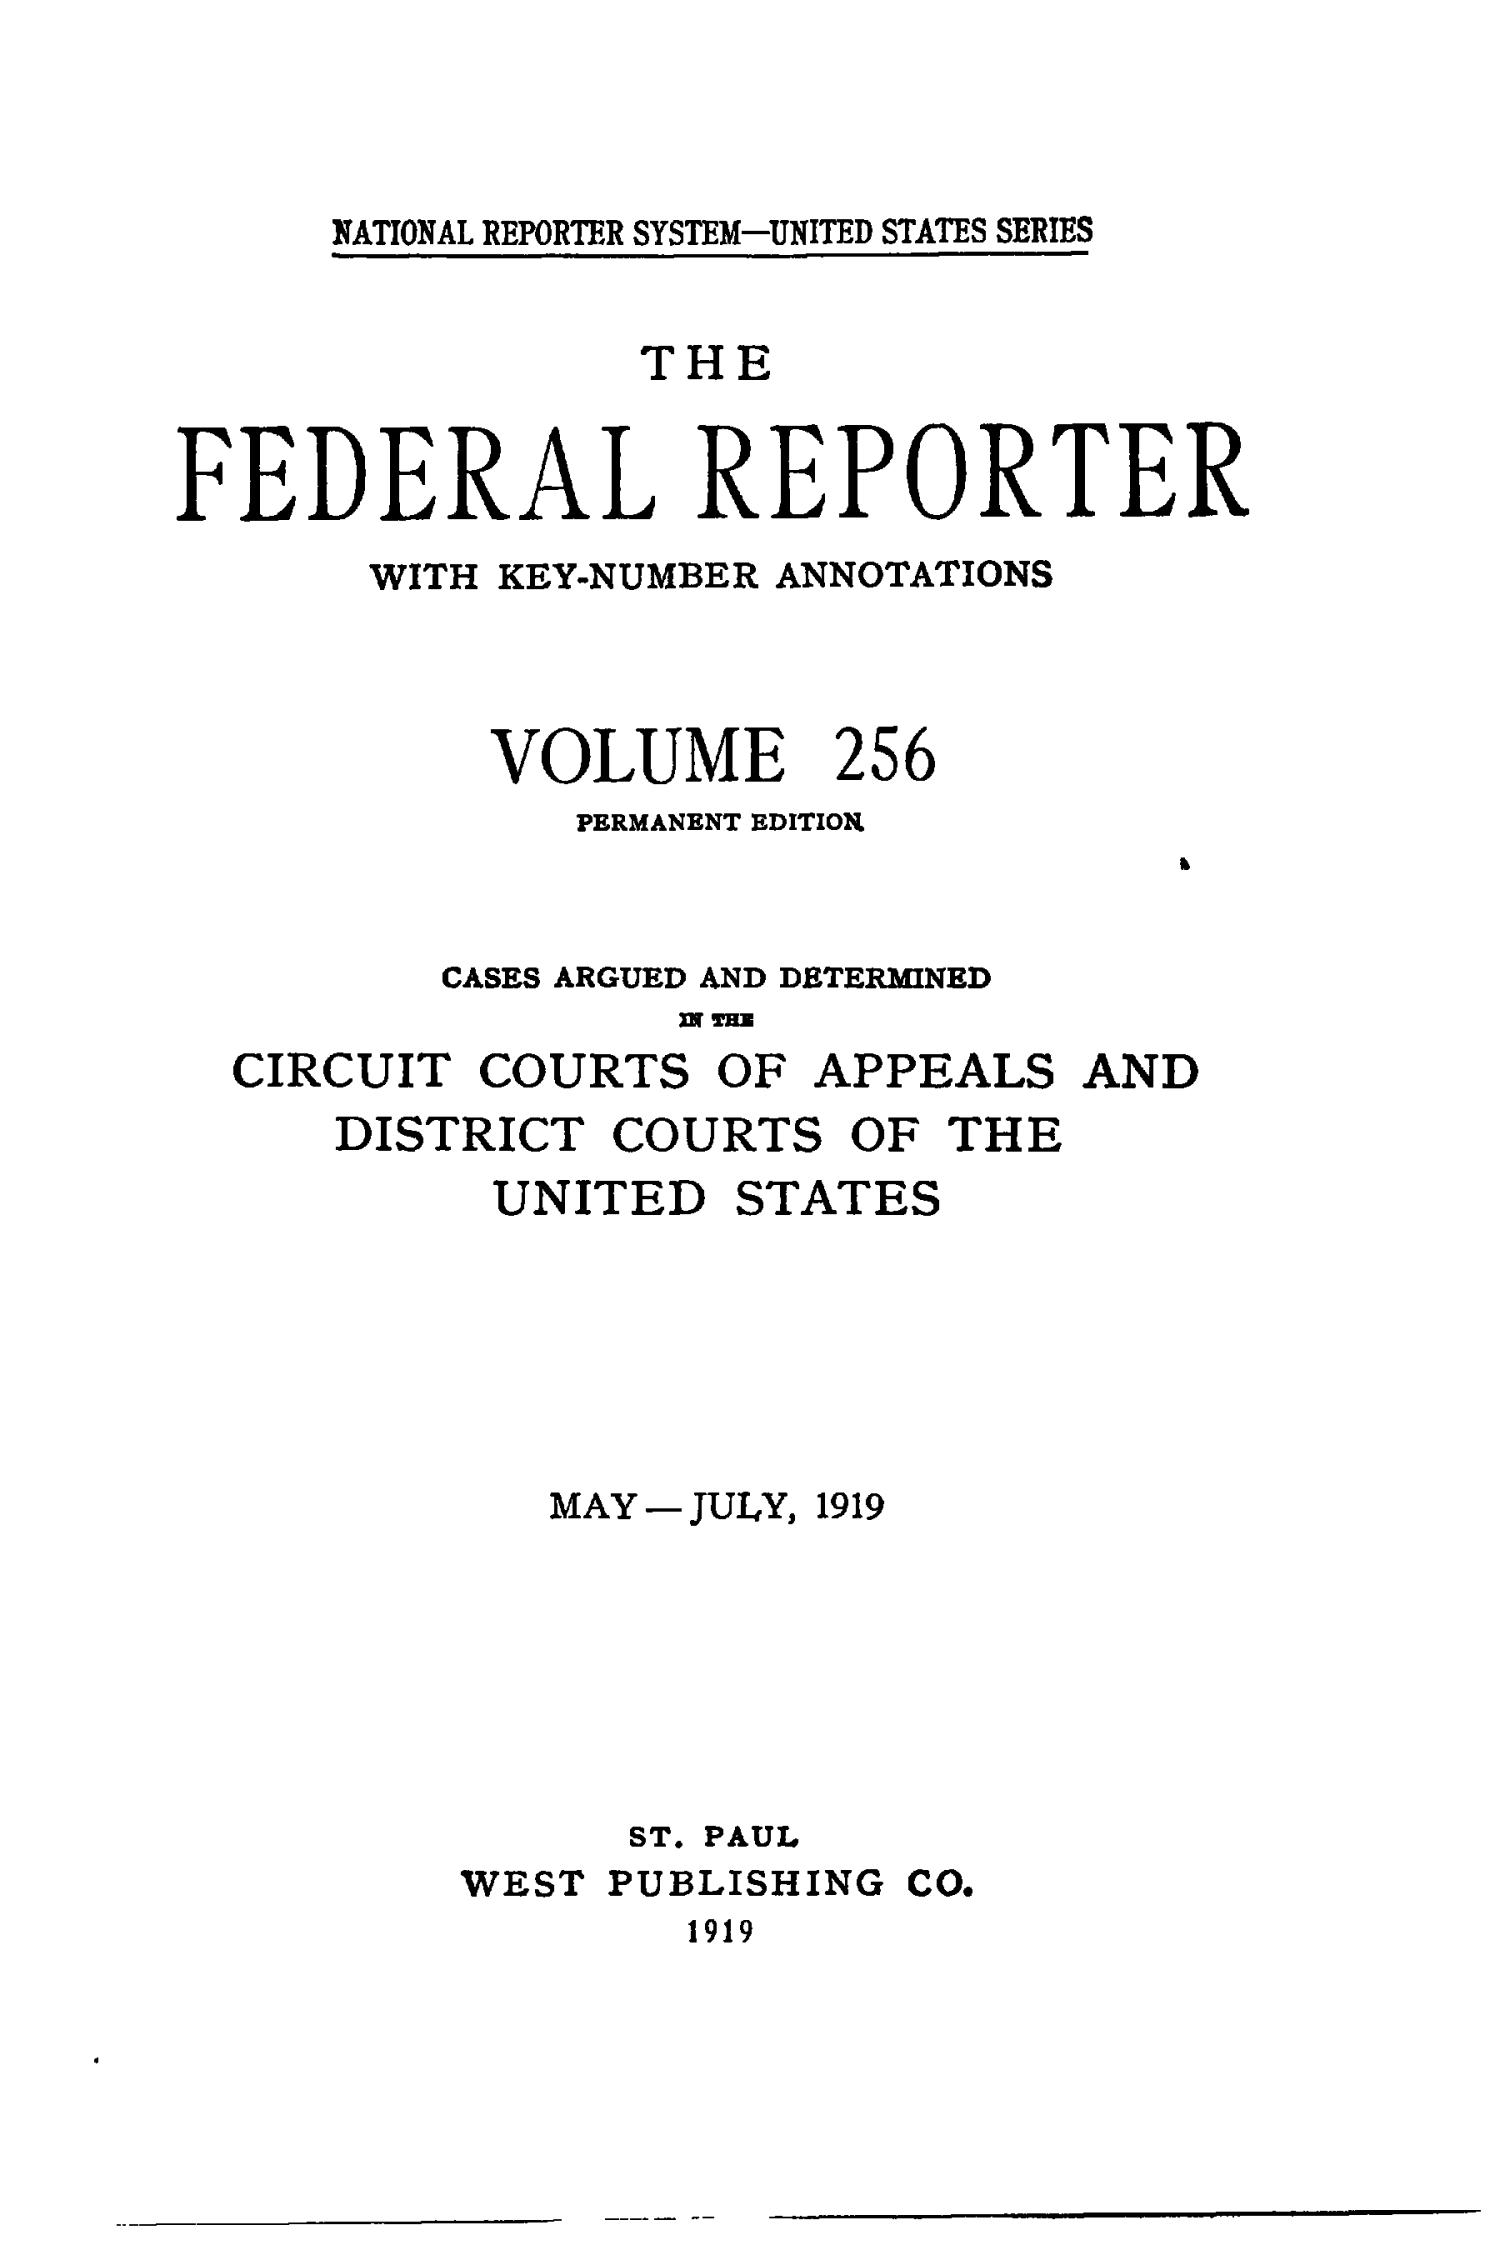 The Federal Reporter with Key-Number Annotations, Volume 256: Cases Argued and Determined in the Circuit Courts of Appeals and District Courts of the United States, May-July, 1919.                                                                                                      Title Page